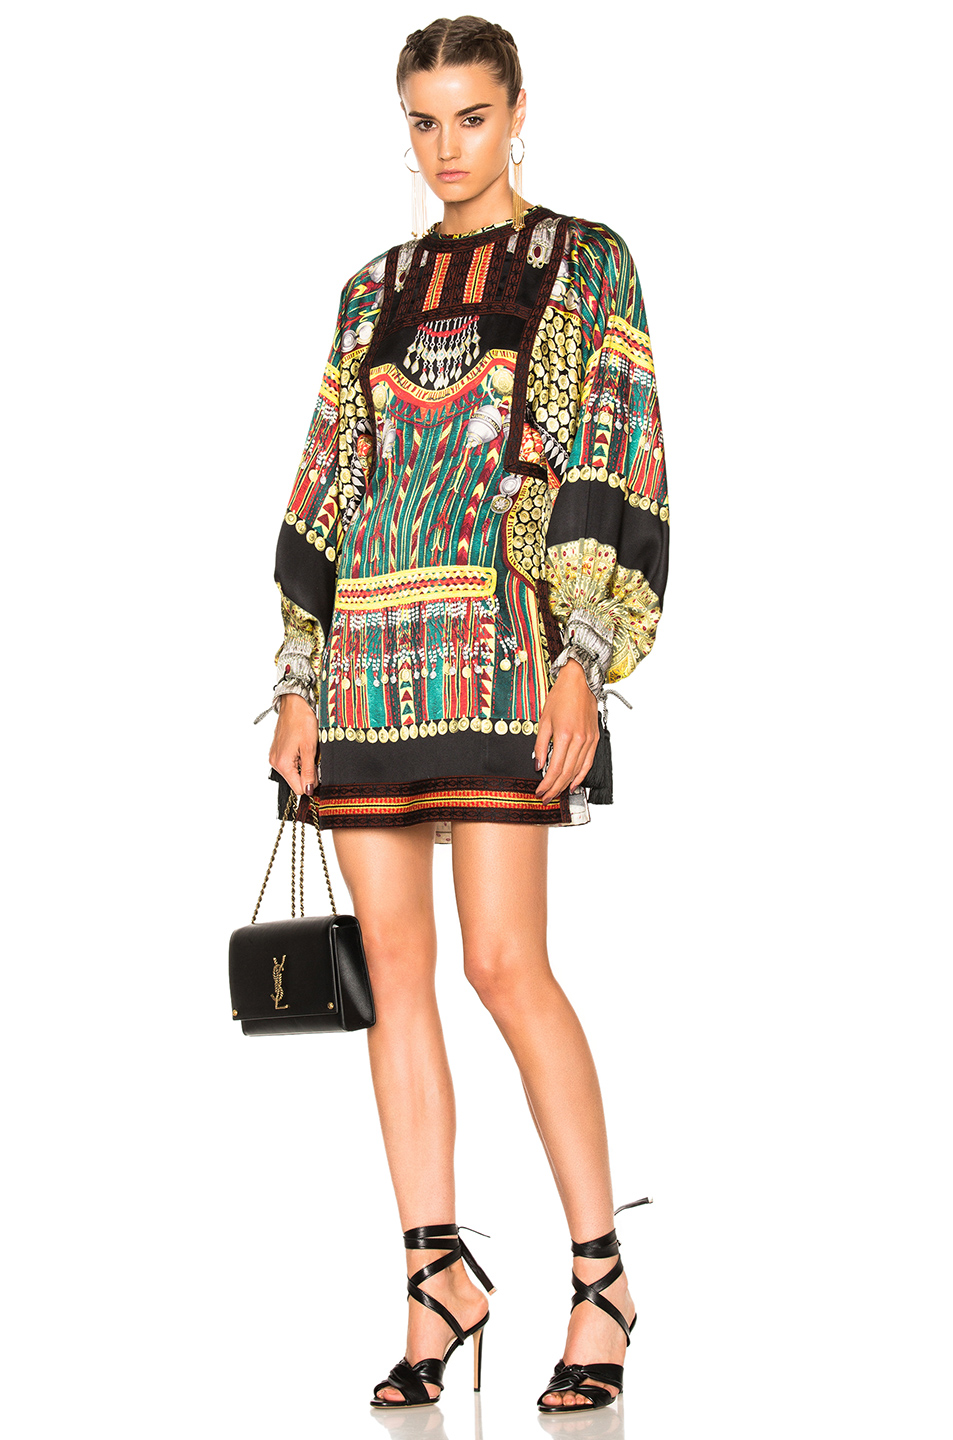 Etro Liquorice Mini Dress in Abstract,Green,Purple,Red,Yellow